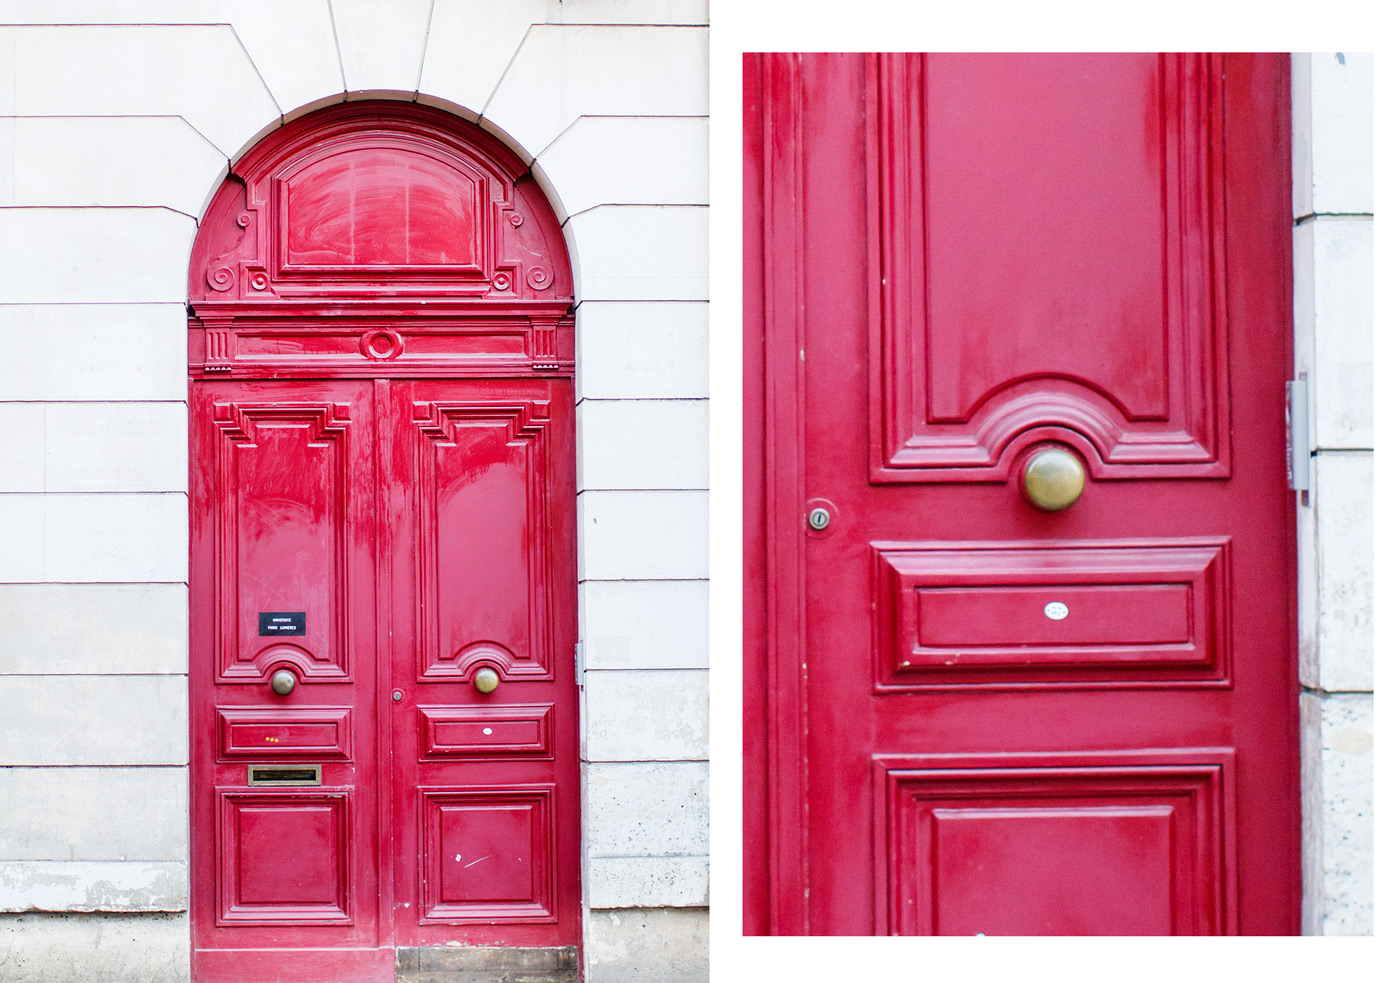 Pretty doors in Paris photographed by Armenyl.com